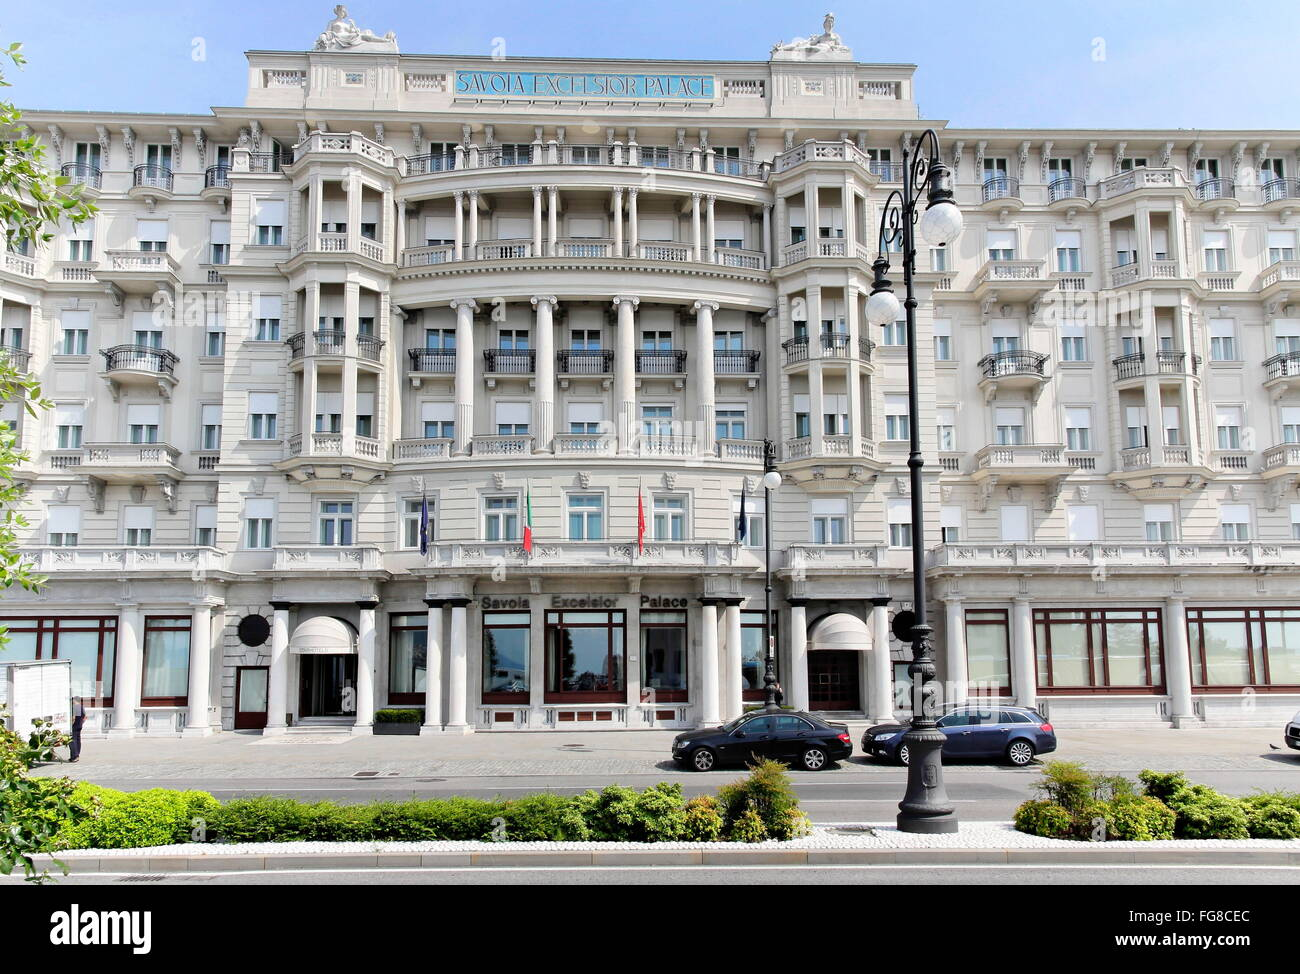 geography / travel, Italy, Friuli, Trieste, Hotel Savoia Excelsior, built: 1912 by A. Fiedler, Additional-Rights - Stock Image